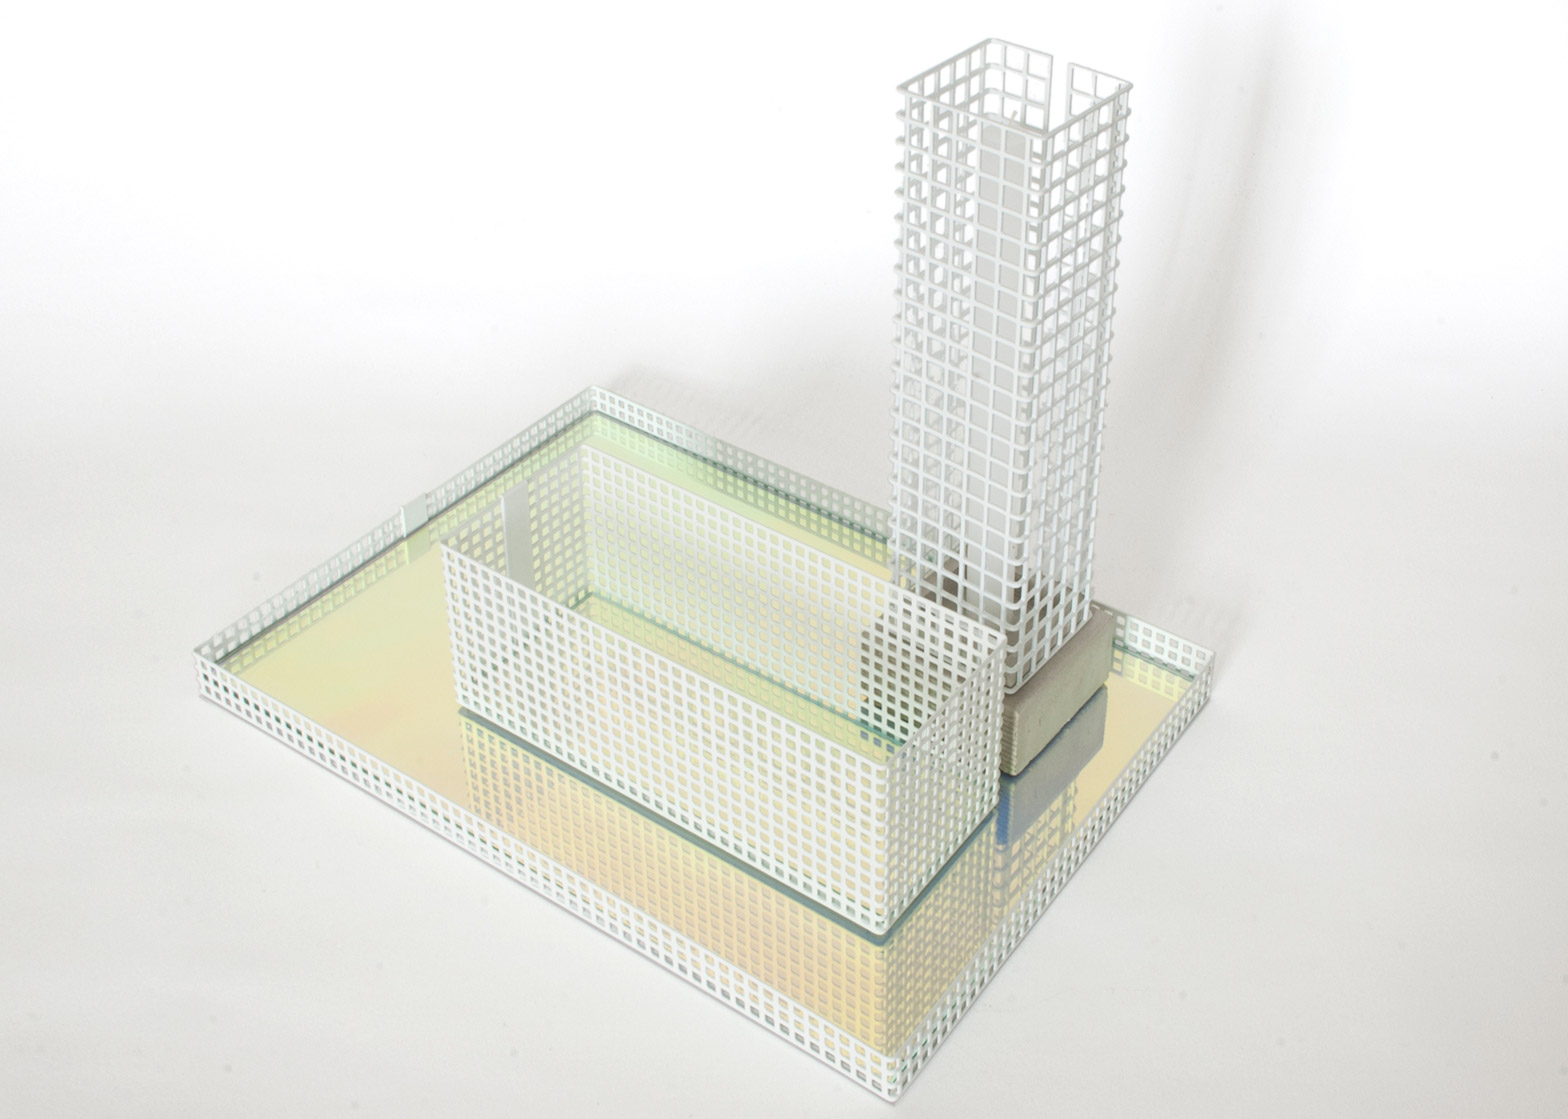 Table Architecture by David Derksen